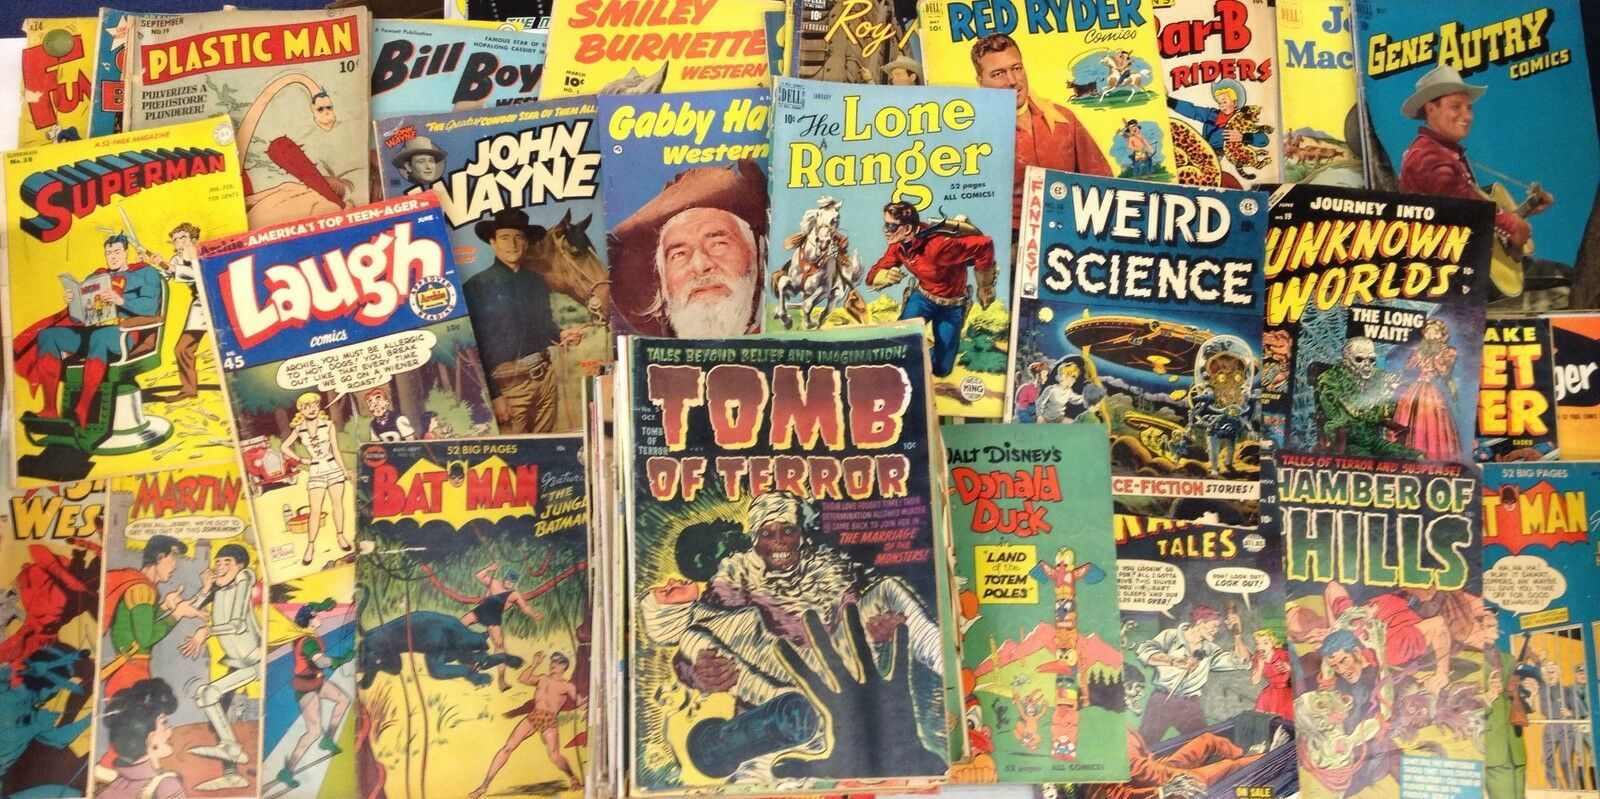 ComicBooks and Photography